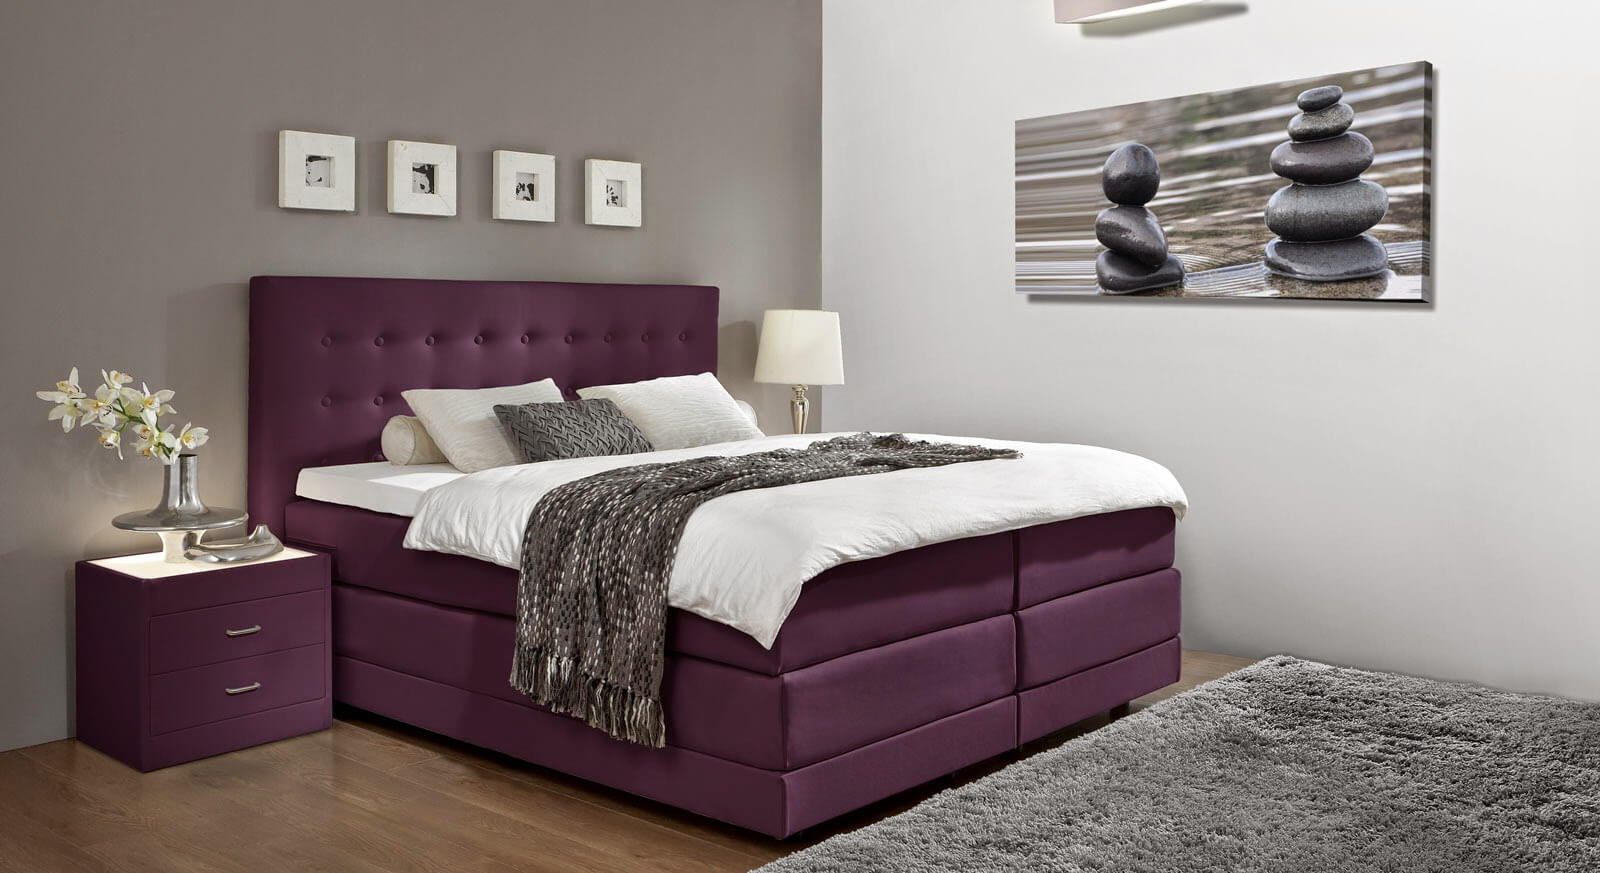 Purple And Black Bedroom Ideas C 243 Mo Pintar Rec 225 Maras Como Pintar Com